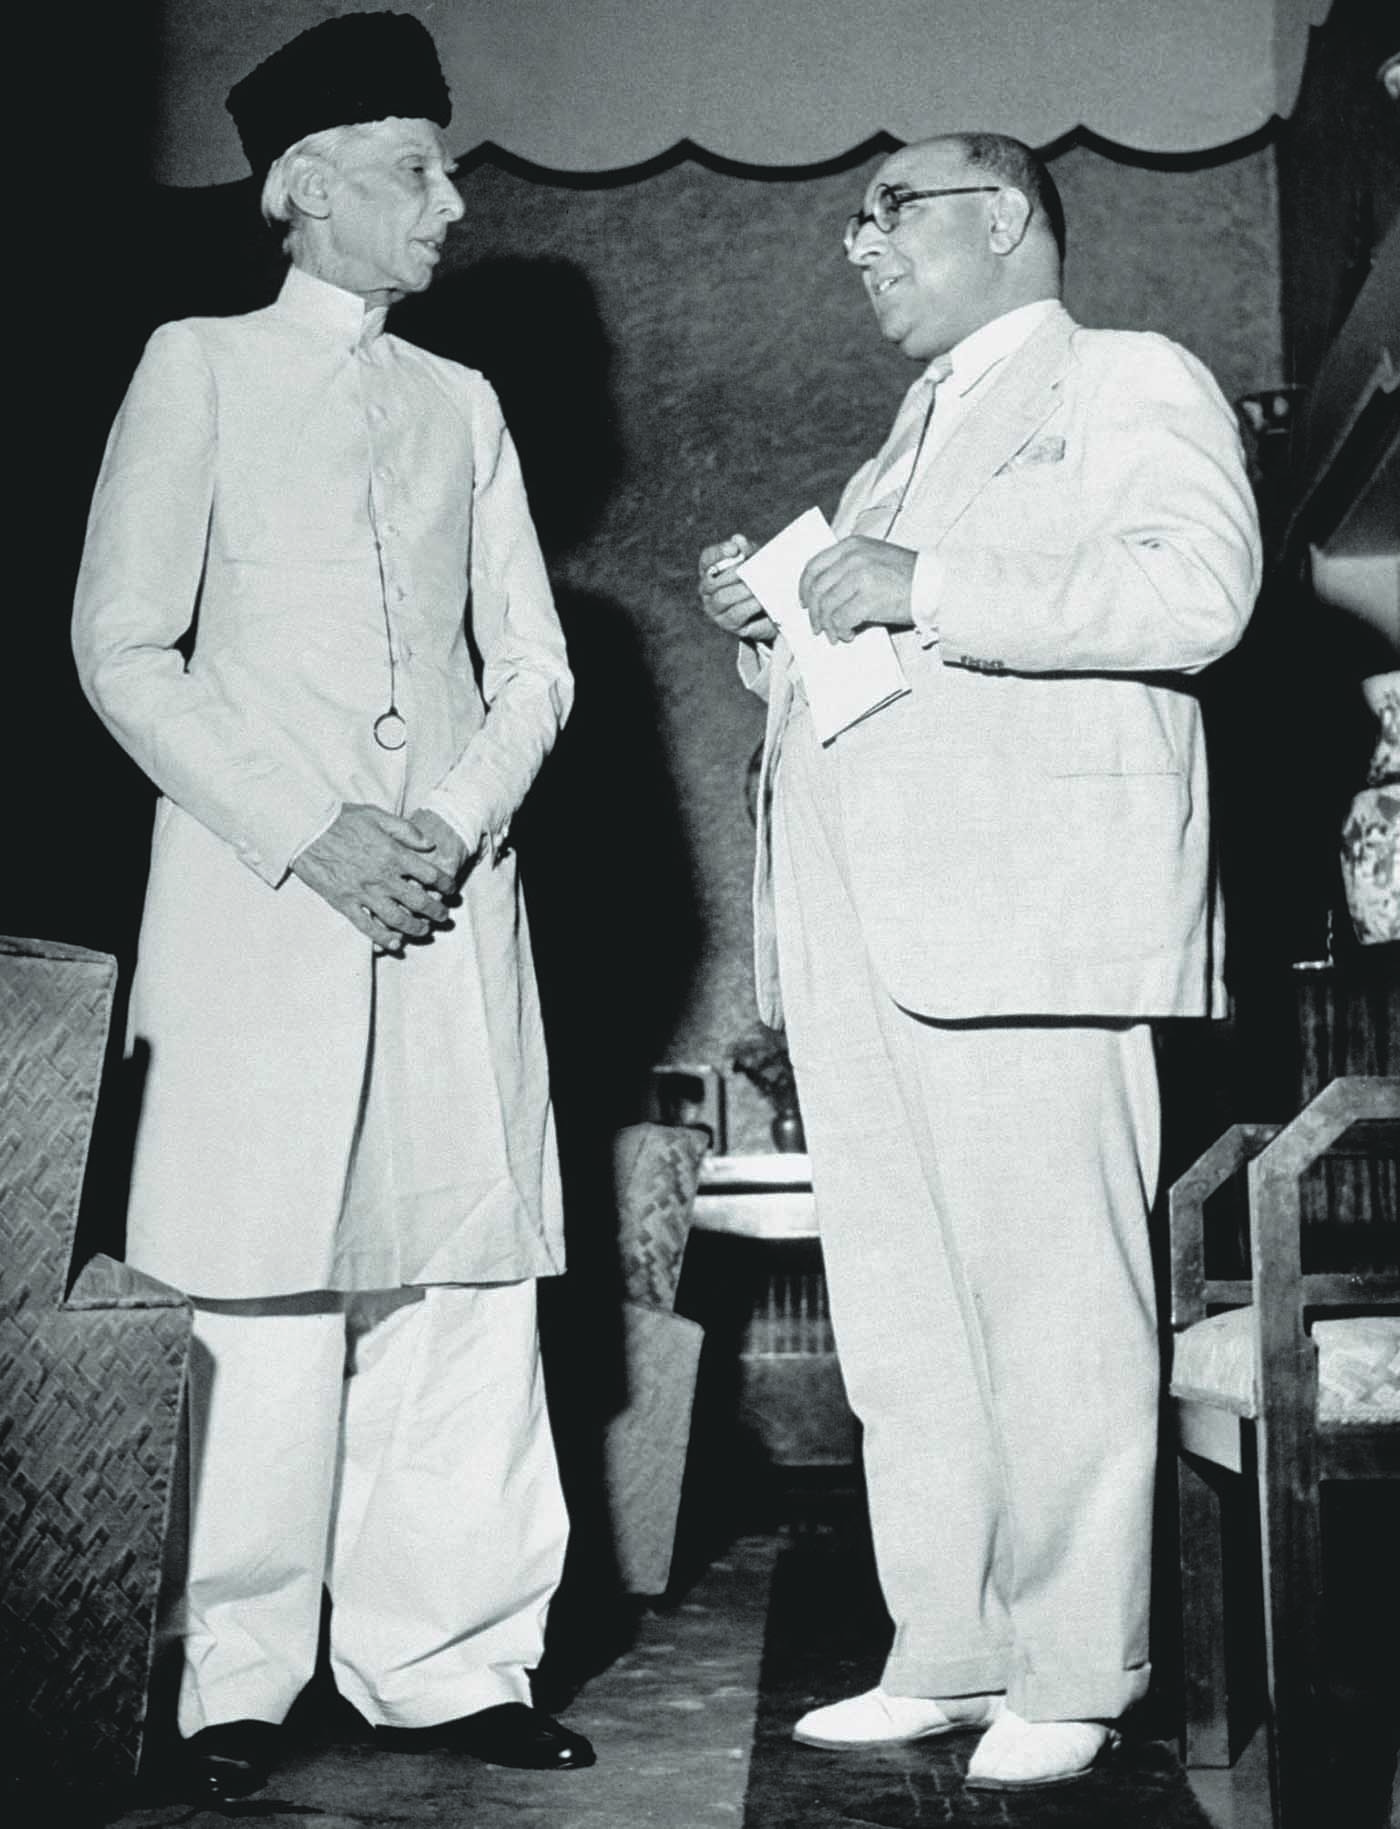 Quaid-i-Azam Mohammad Ali Jinnah and Nawabzada Liaquat Ali Khan at the former's residence at 10, Aurangzeb Road. — Excerpted with permission from Witness to Life and Freedom, Roli Books, Delhi